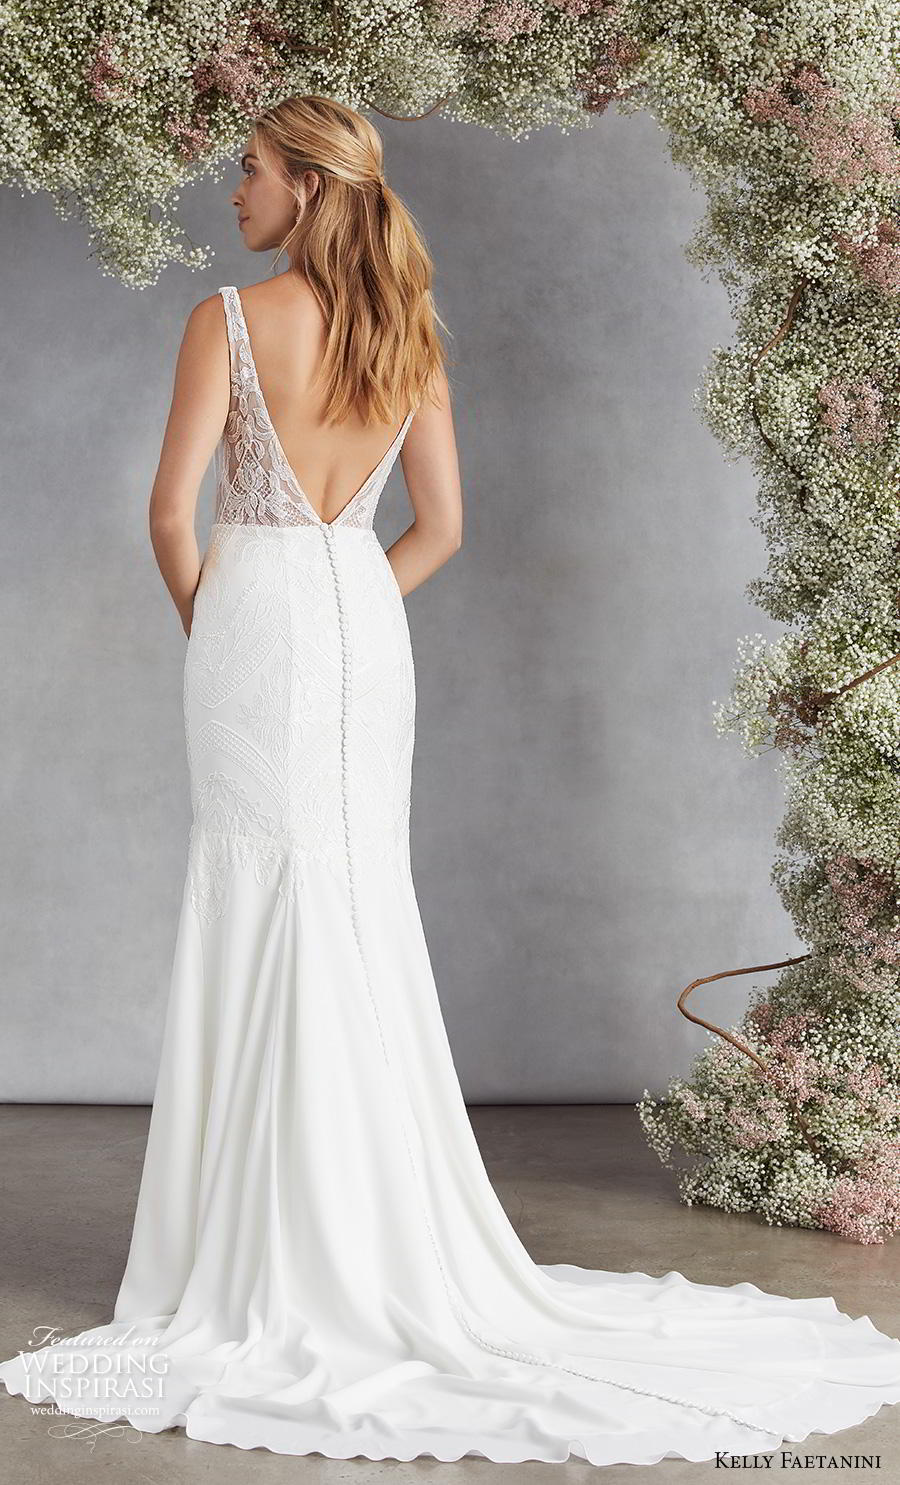 kelly faetanini fall 2020 bridal sleeveless deep plunging v neck heavily embellished bodice elegant classic mermaid wedding dress backless v back chapel train (17) bv